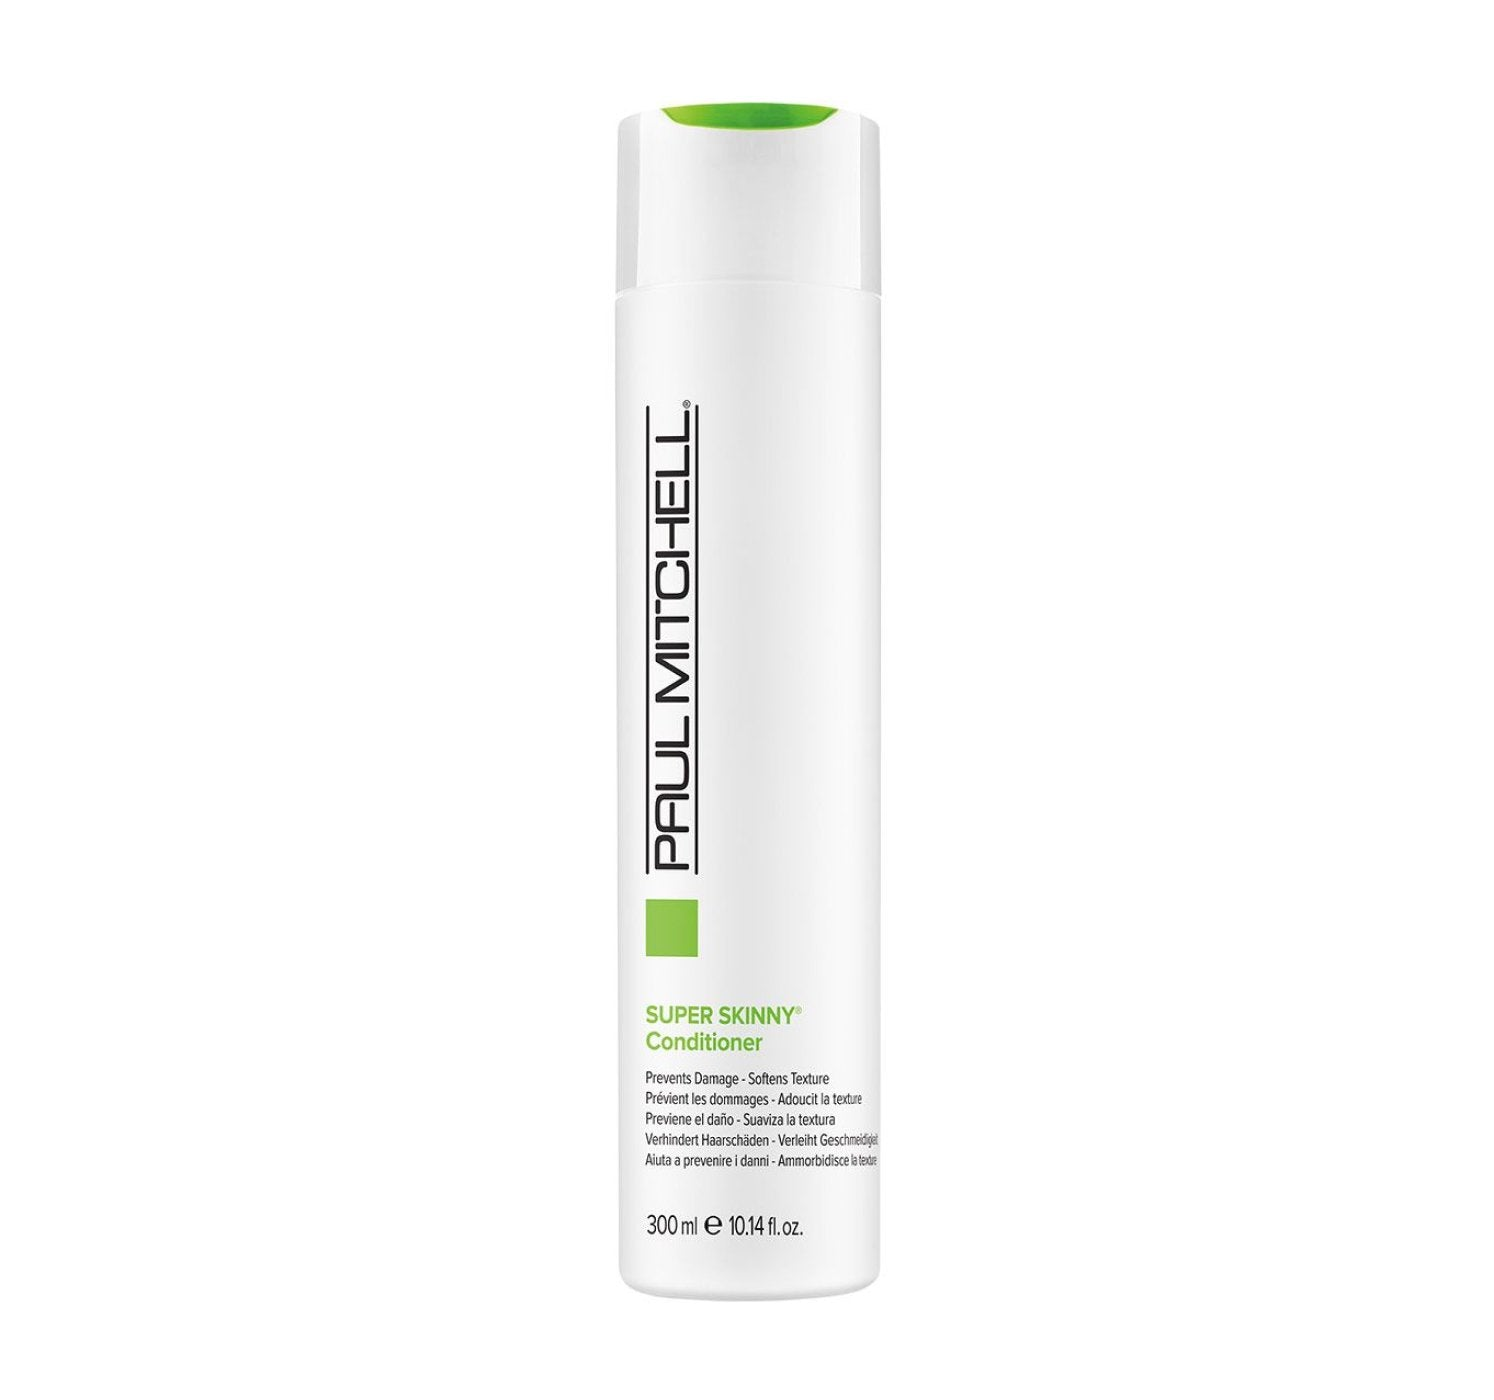 Paul Mitchell Super Skinny Daily Conditioner 300ml